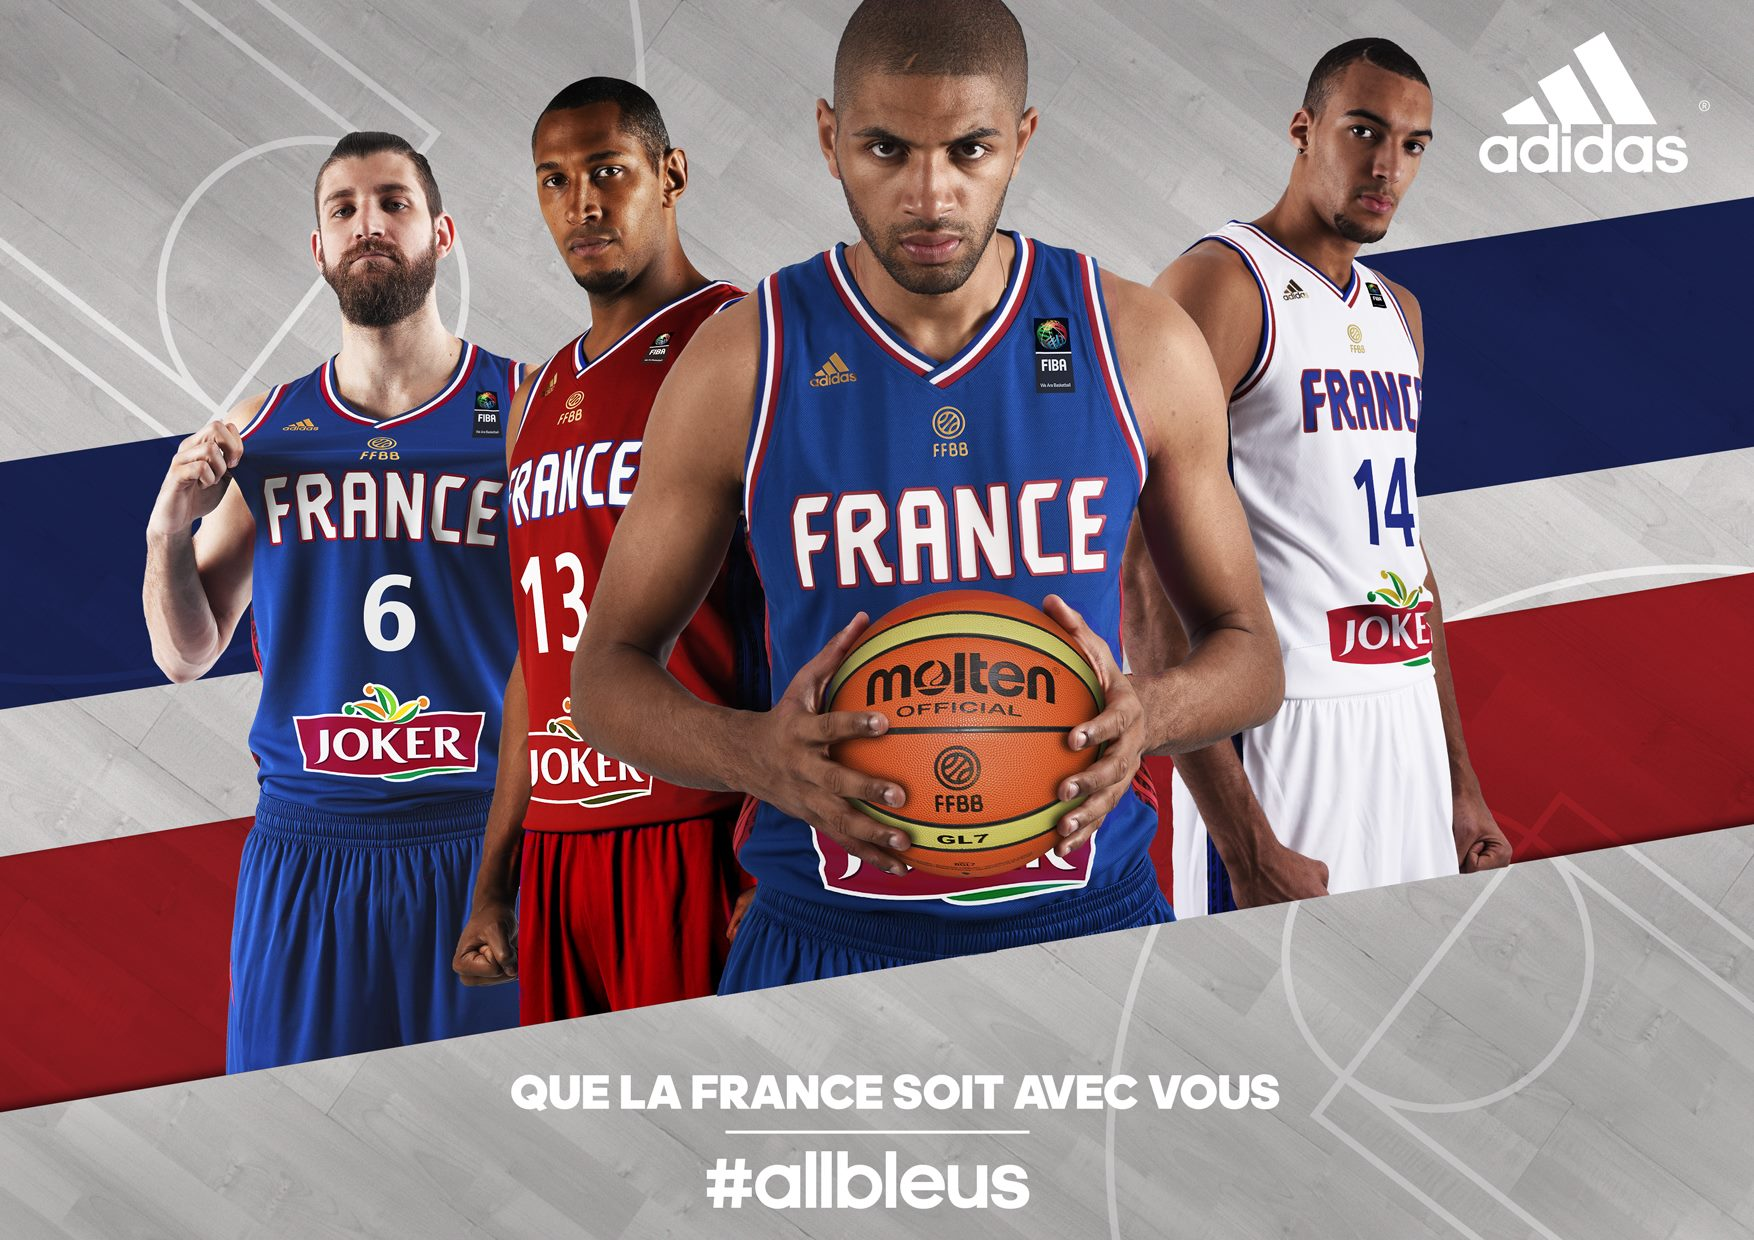 Maillot 2015 | FFBB